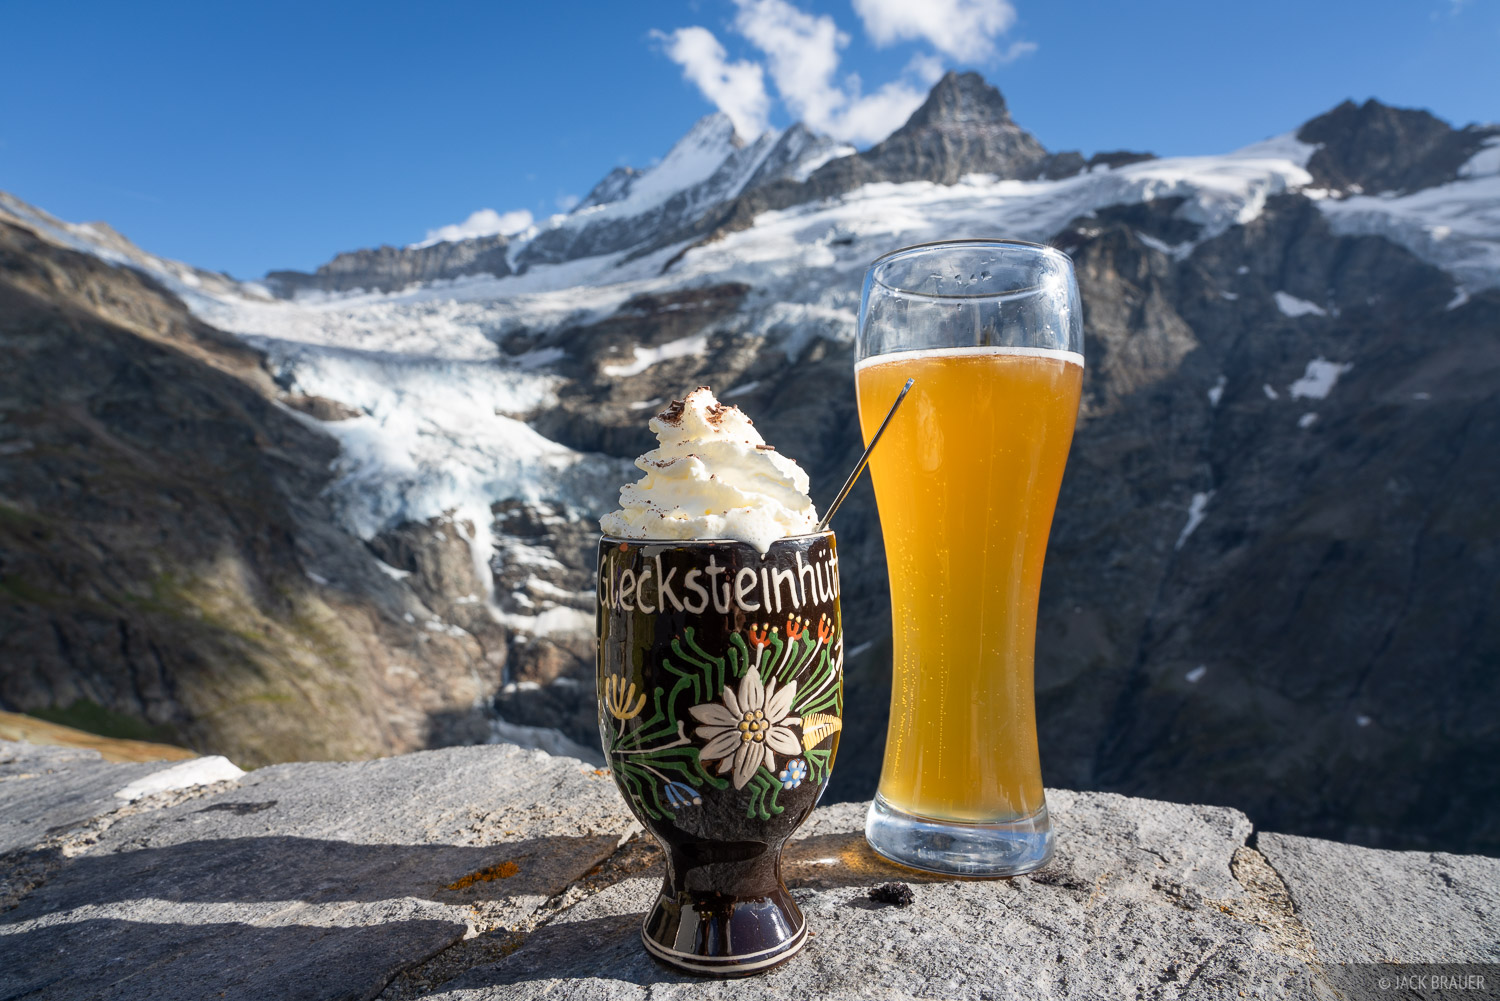 Bernese Alps, Glecksteinhütte, Schreckhorn, Switzerland, beer, Bernese Oberland, Alps, photo